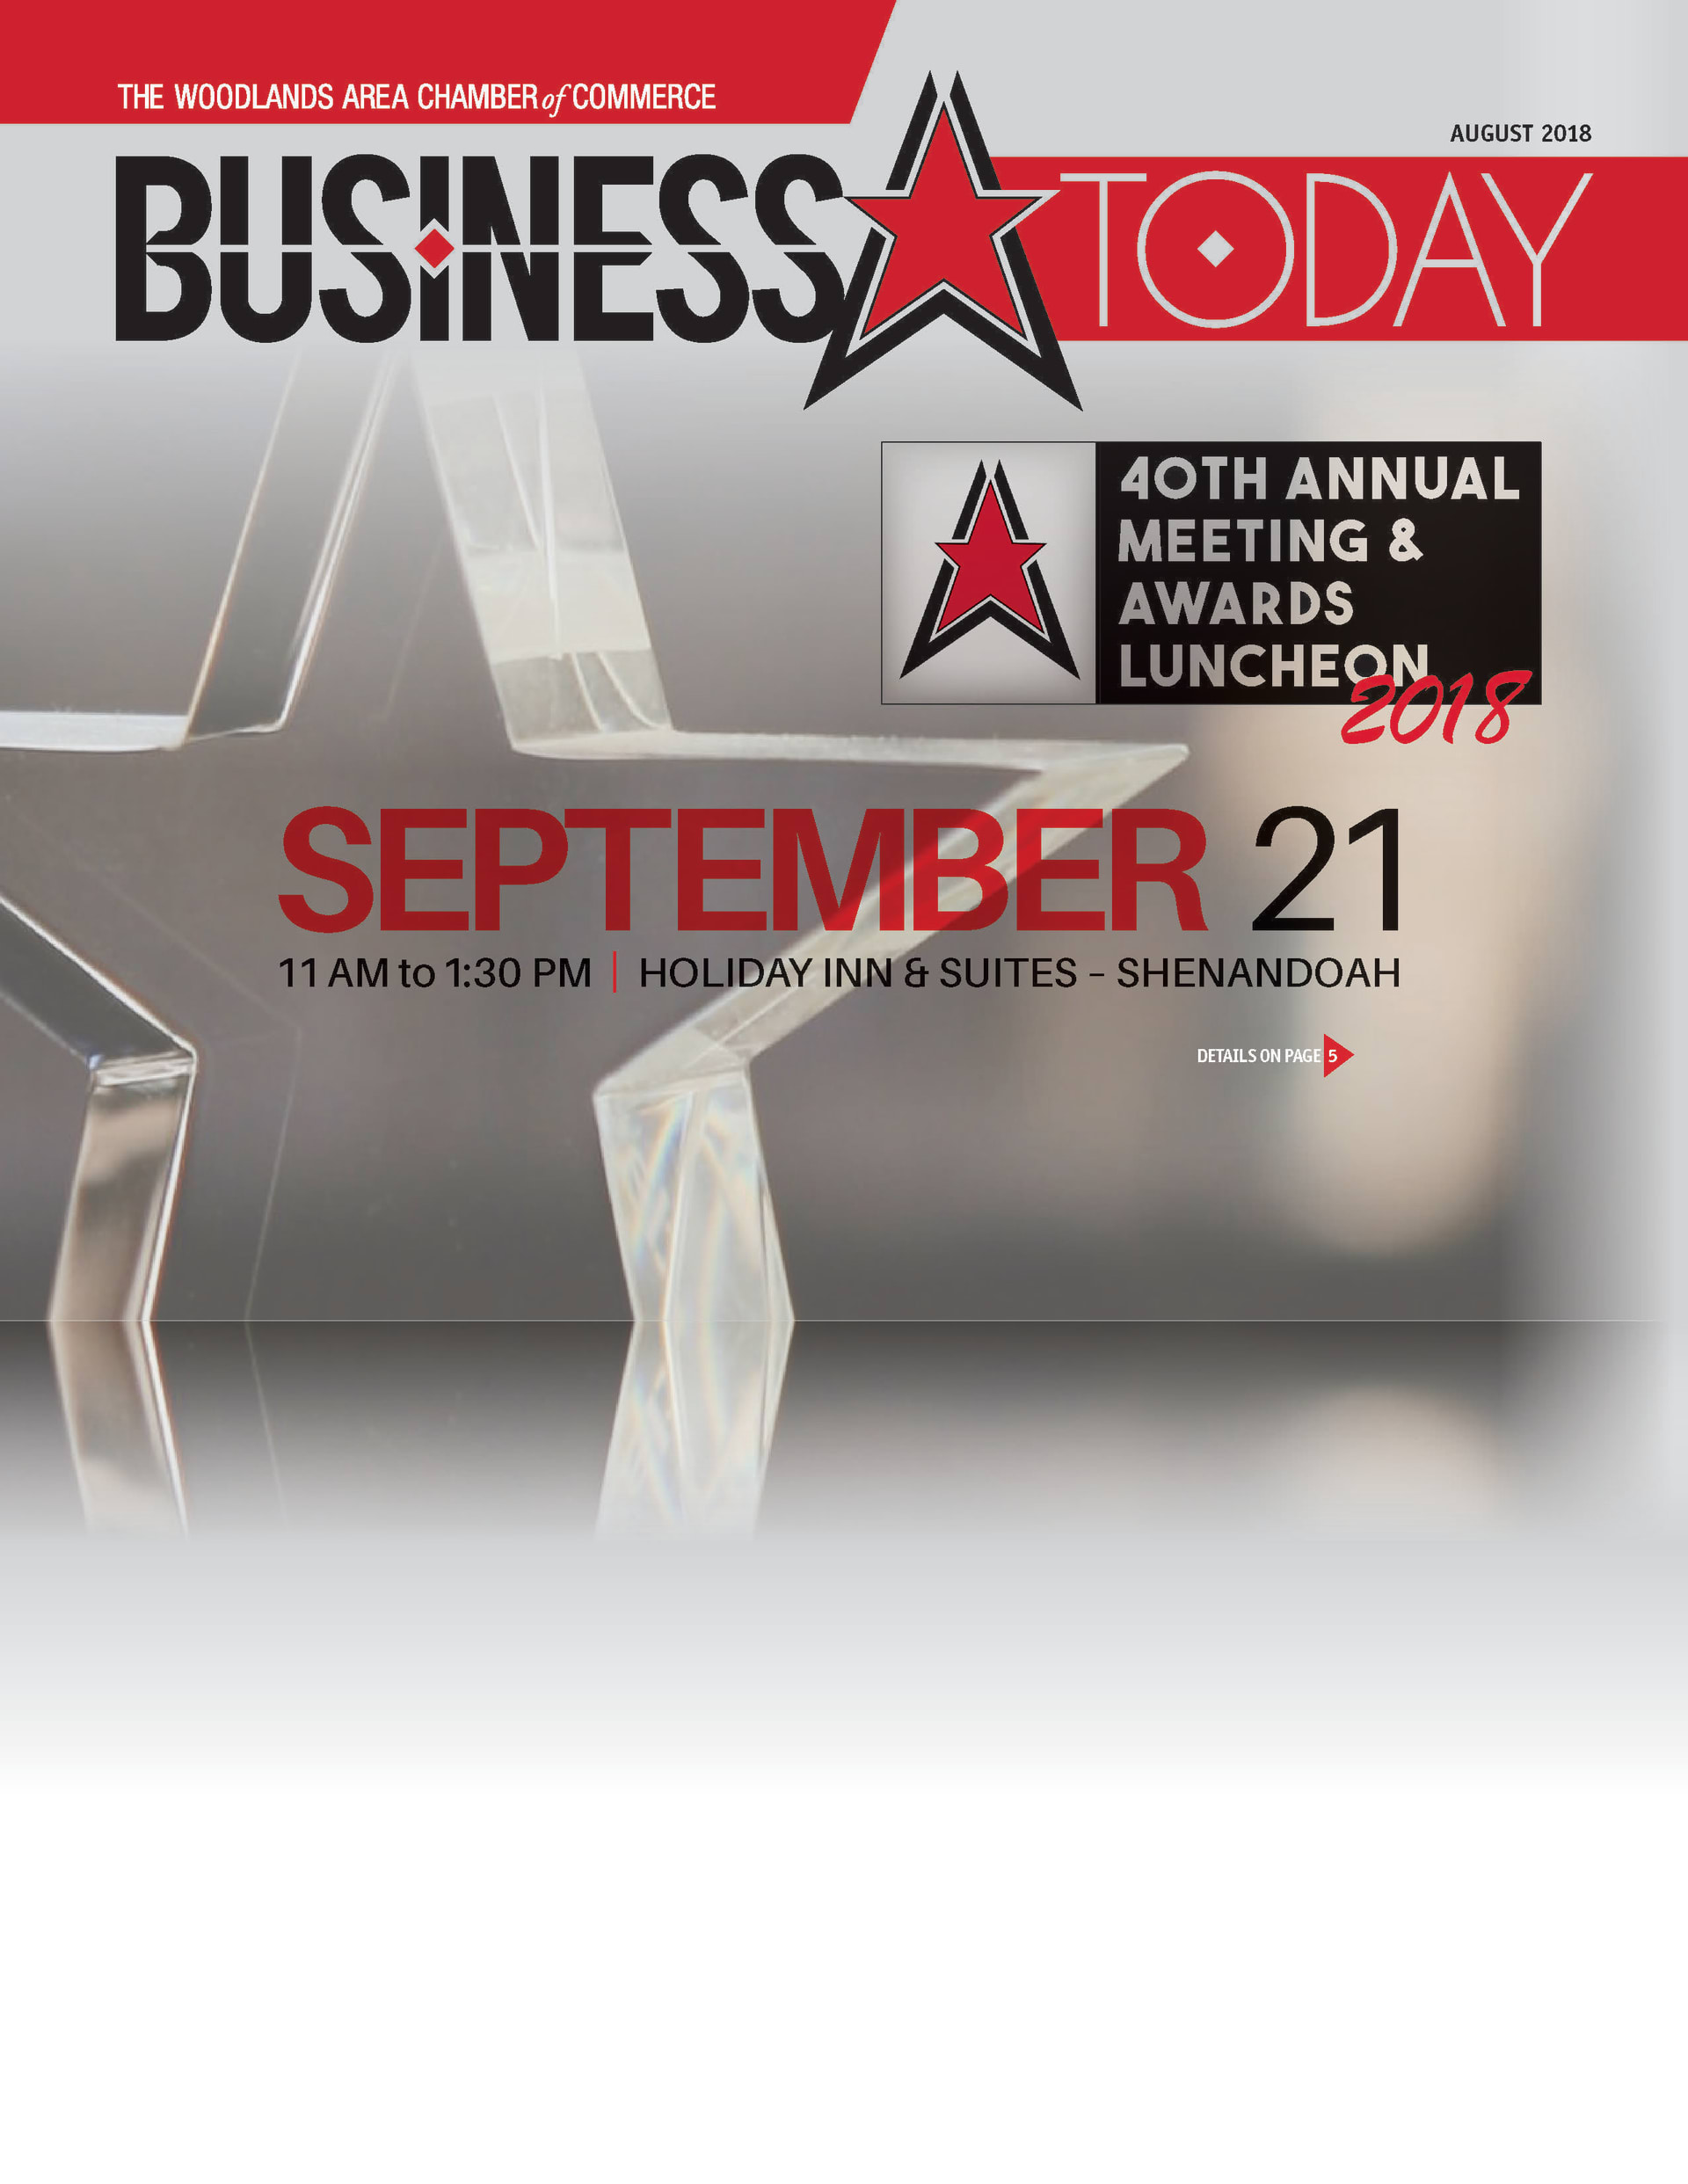 The Woodlands Area Chamber of Commerce's Business Today August 2018